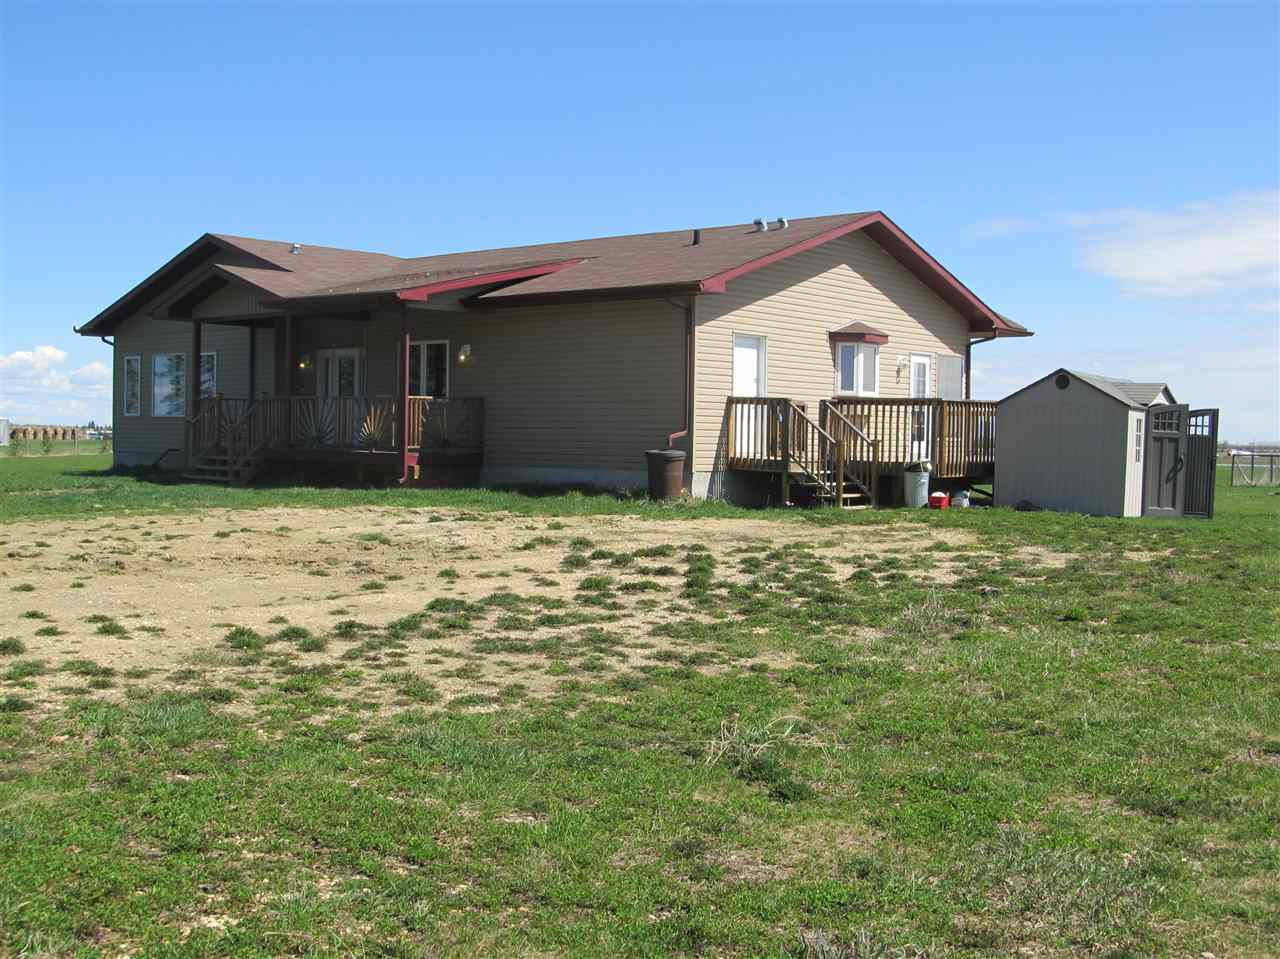 Photo 29: 58303 RR 263: Rural Westlock County House for sale : MLS(r) # E4052735